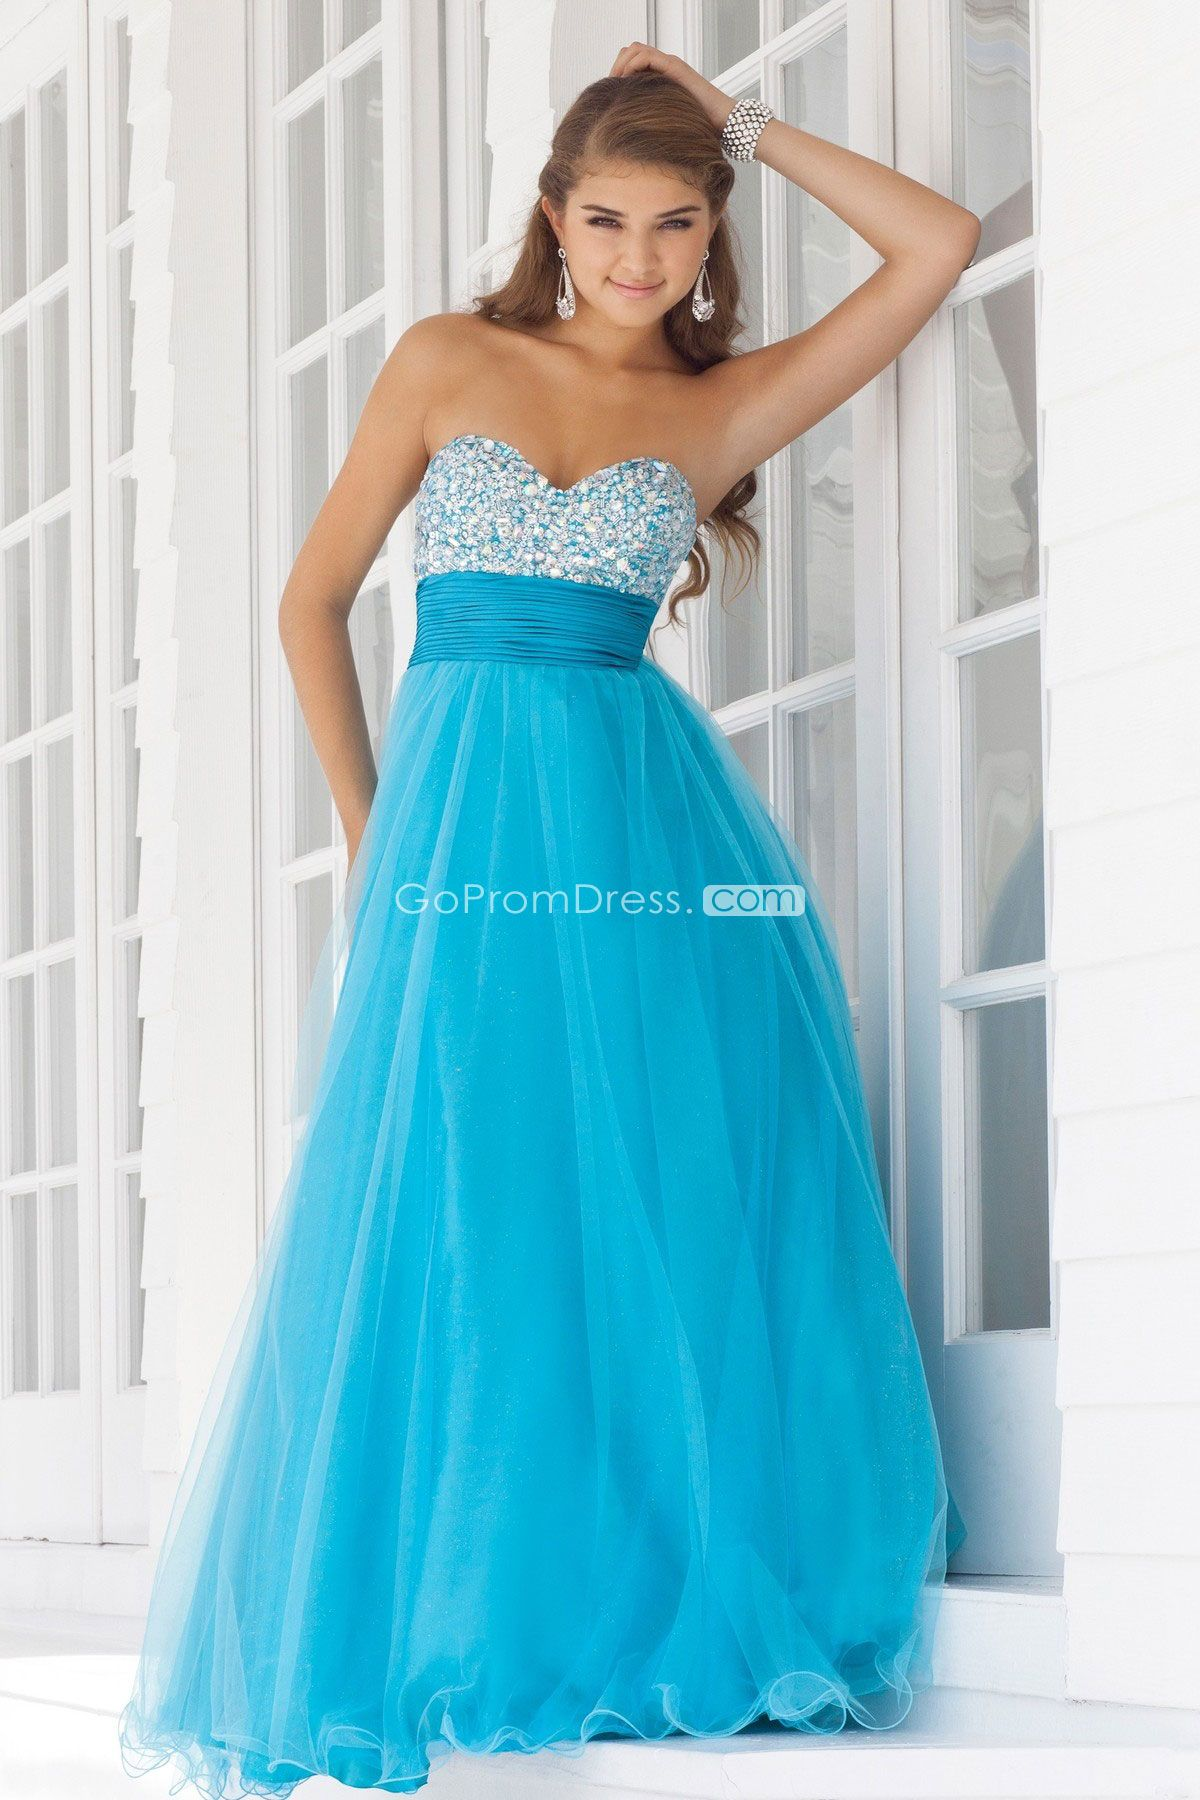 Glamorous Beaded Tulle Ball Gown Empire Prom Dress picture 1 ...